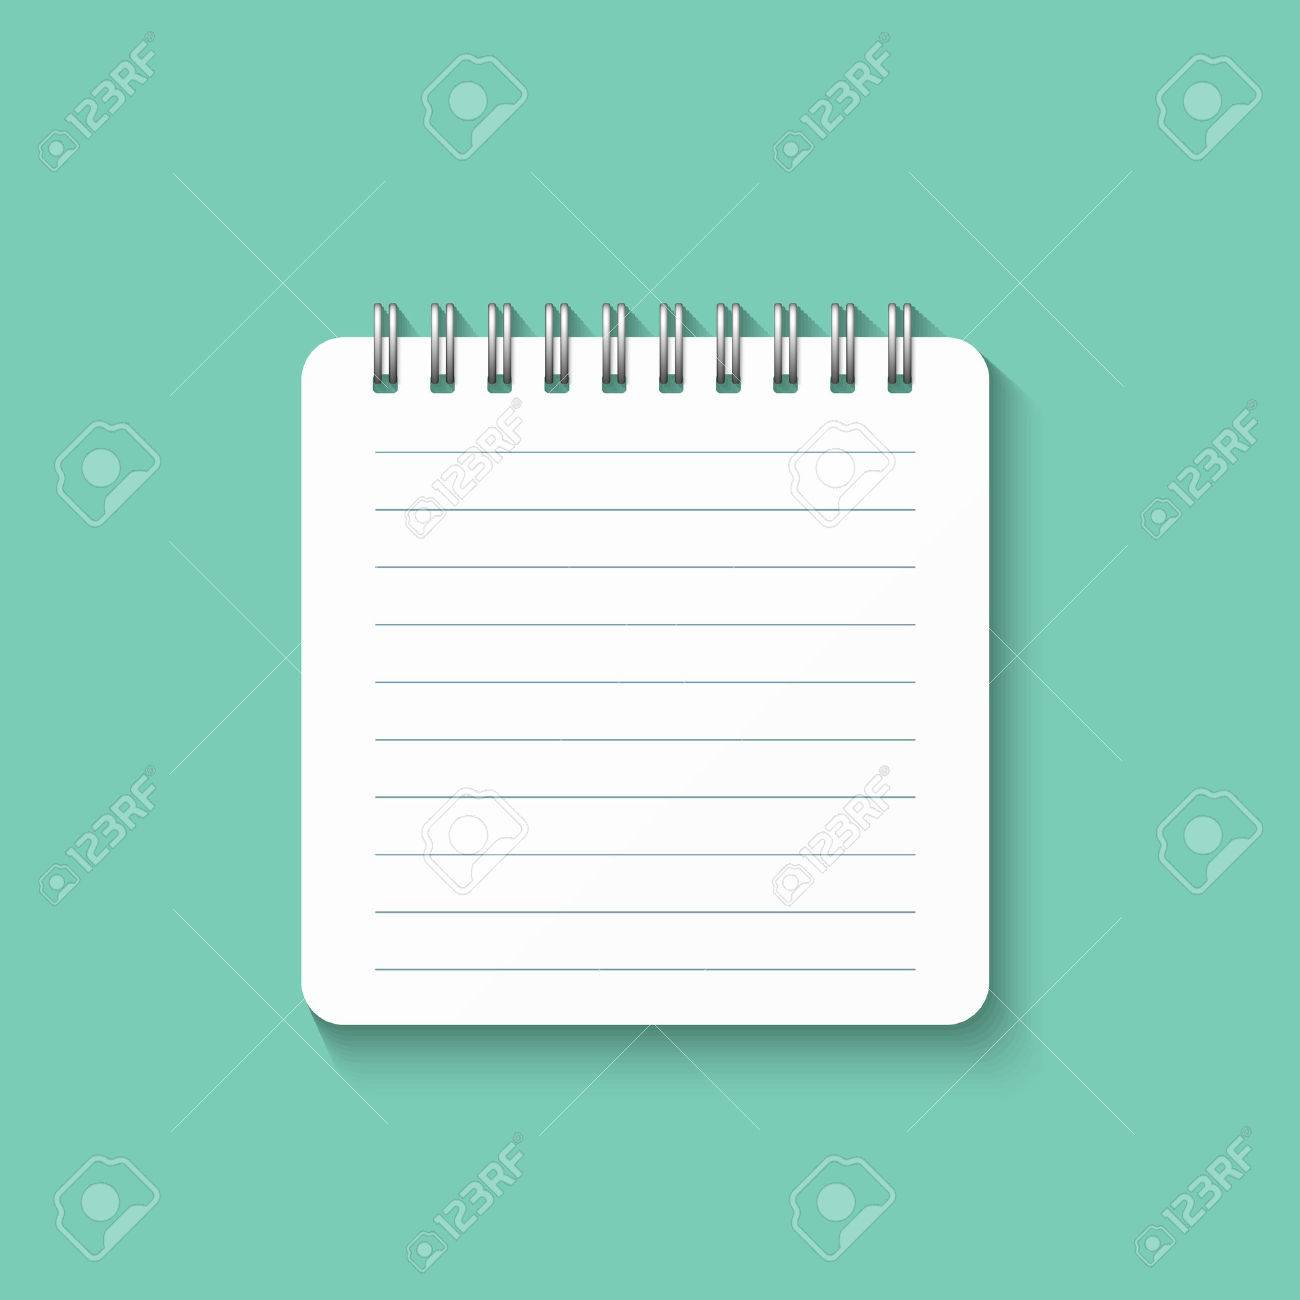 Template With Spiral Notebook Isolated On A Green Background School